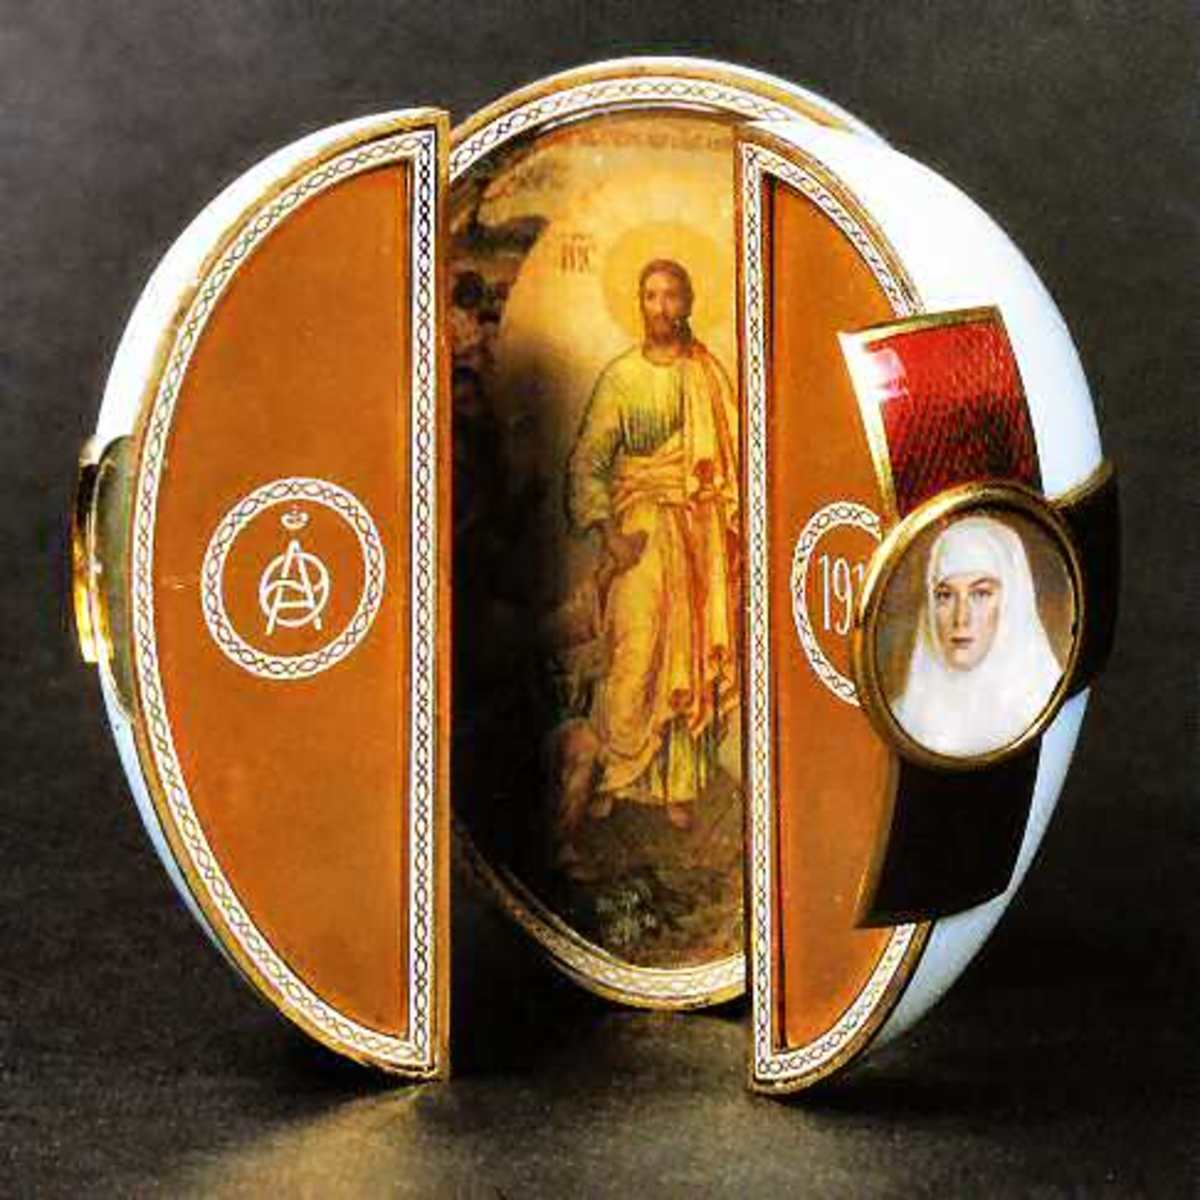 The Red Cross Triptych Egg - 1915